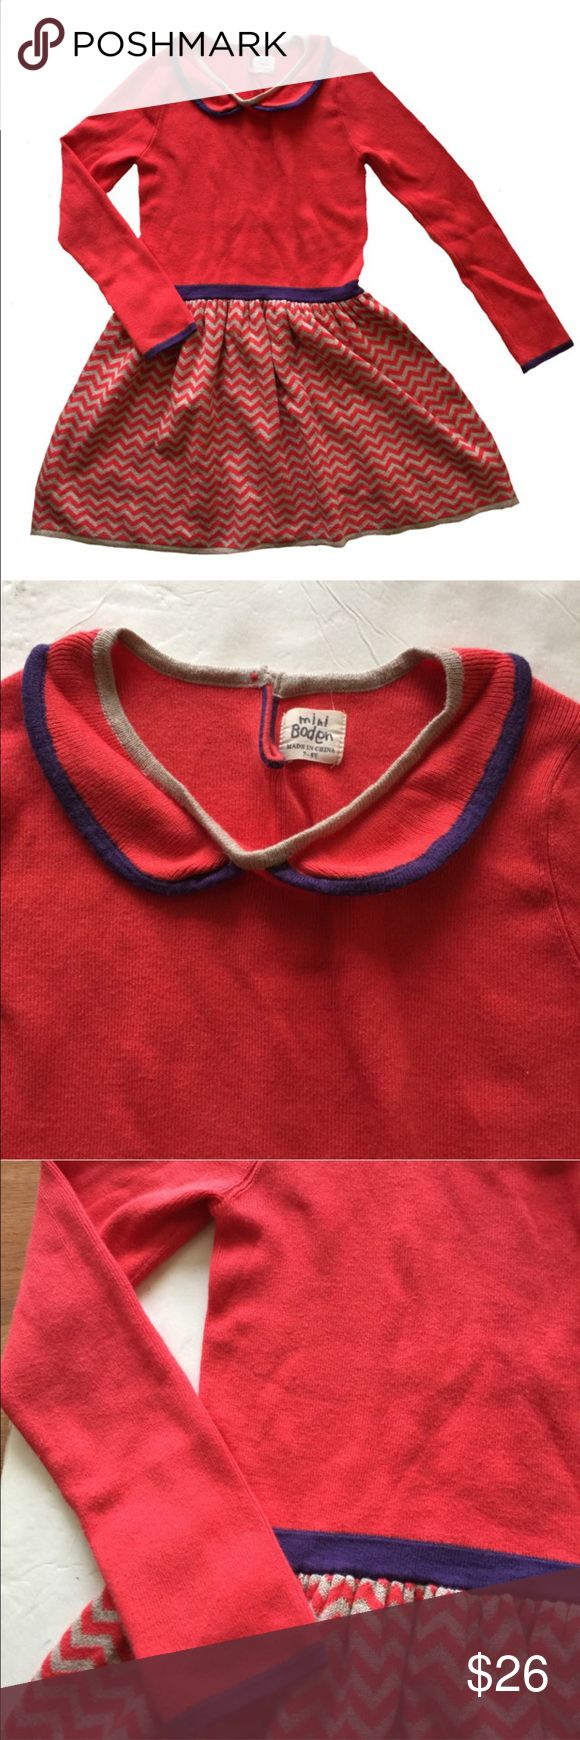 Mini Boden Red Sweater Dress Red long-sleeved sweater dress; size is 7/8Y. Mini Boden Dresses Casual